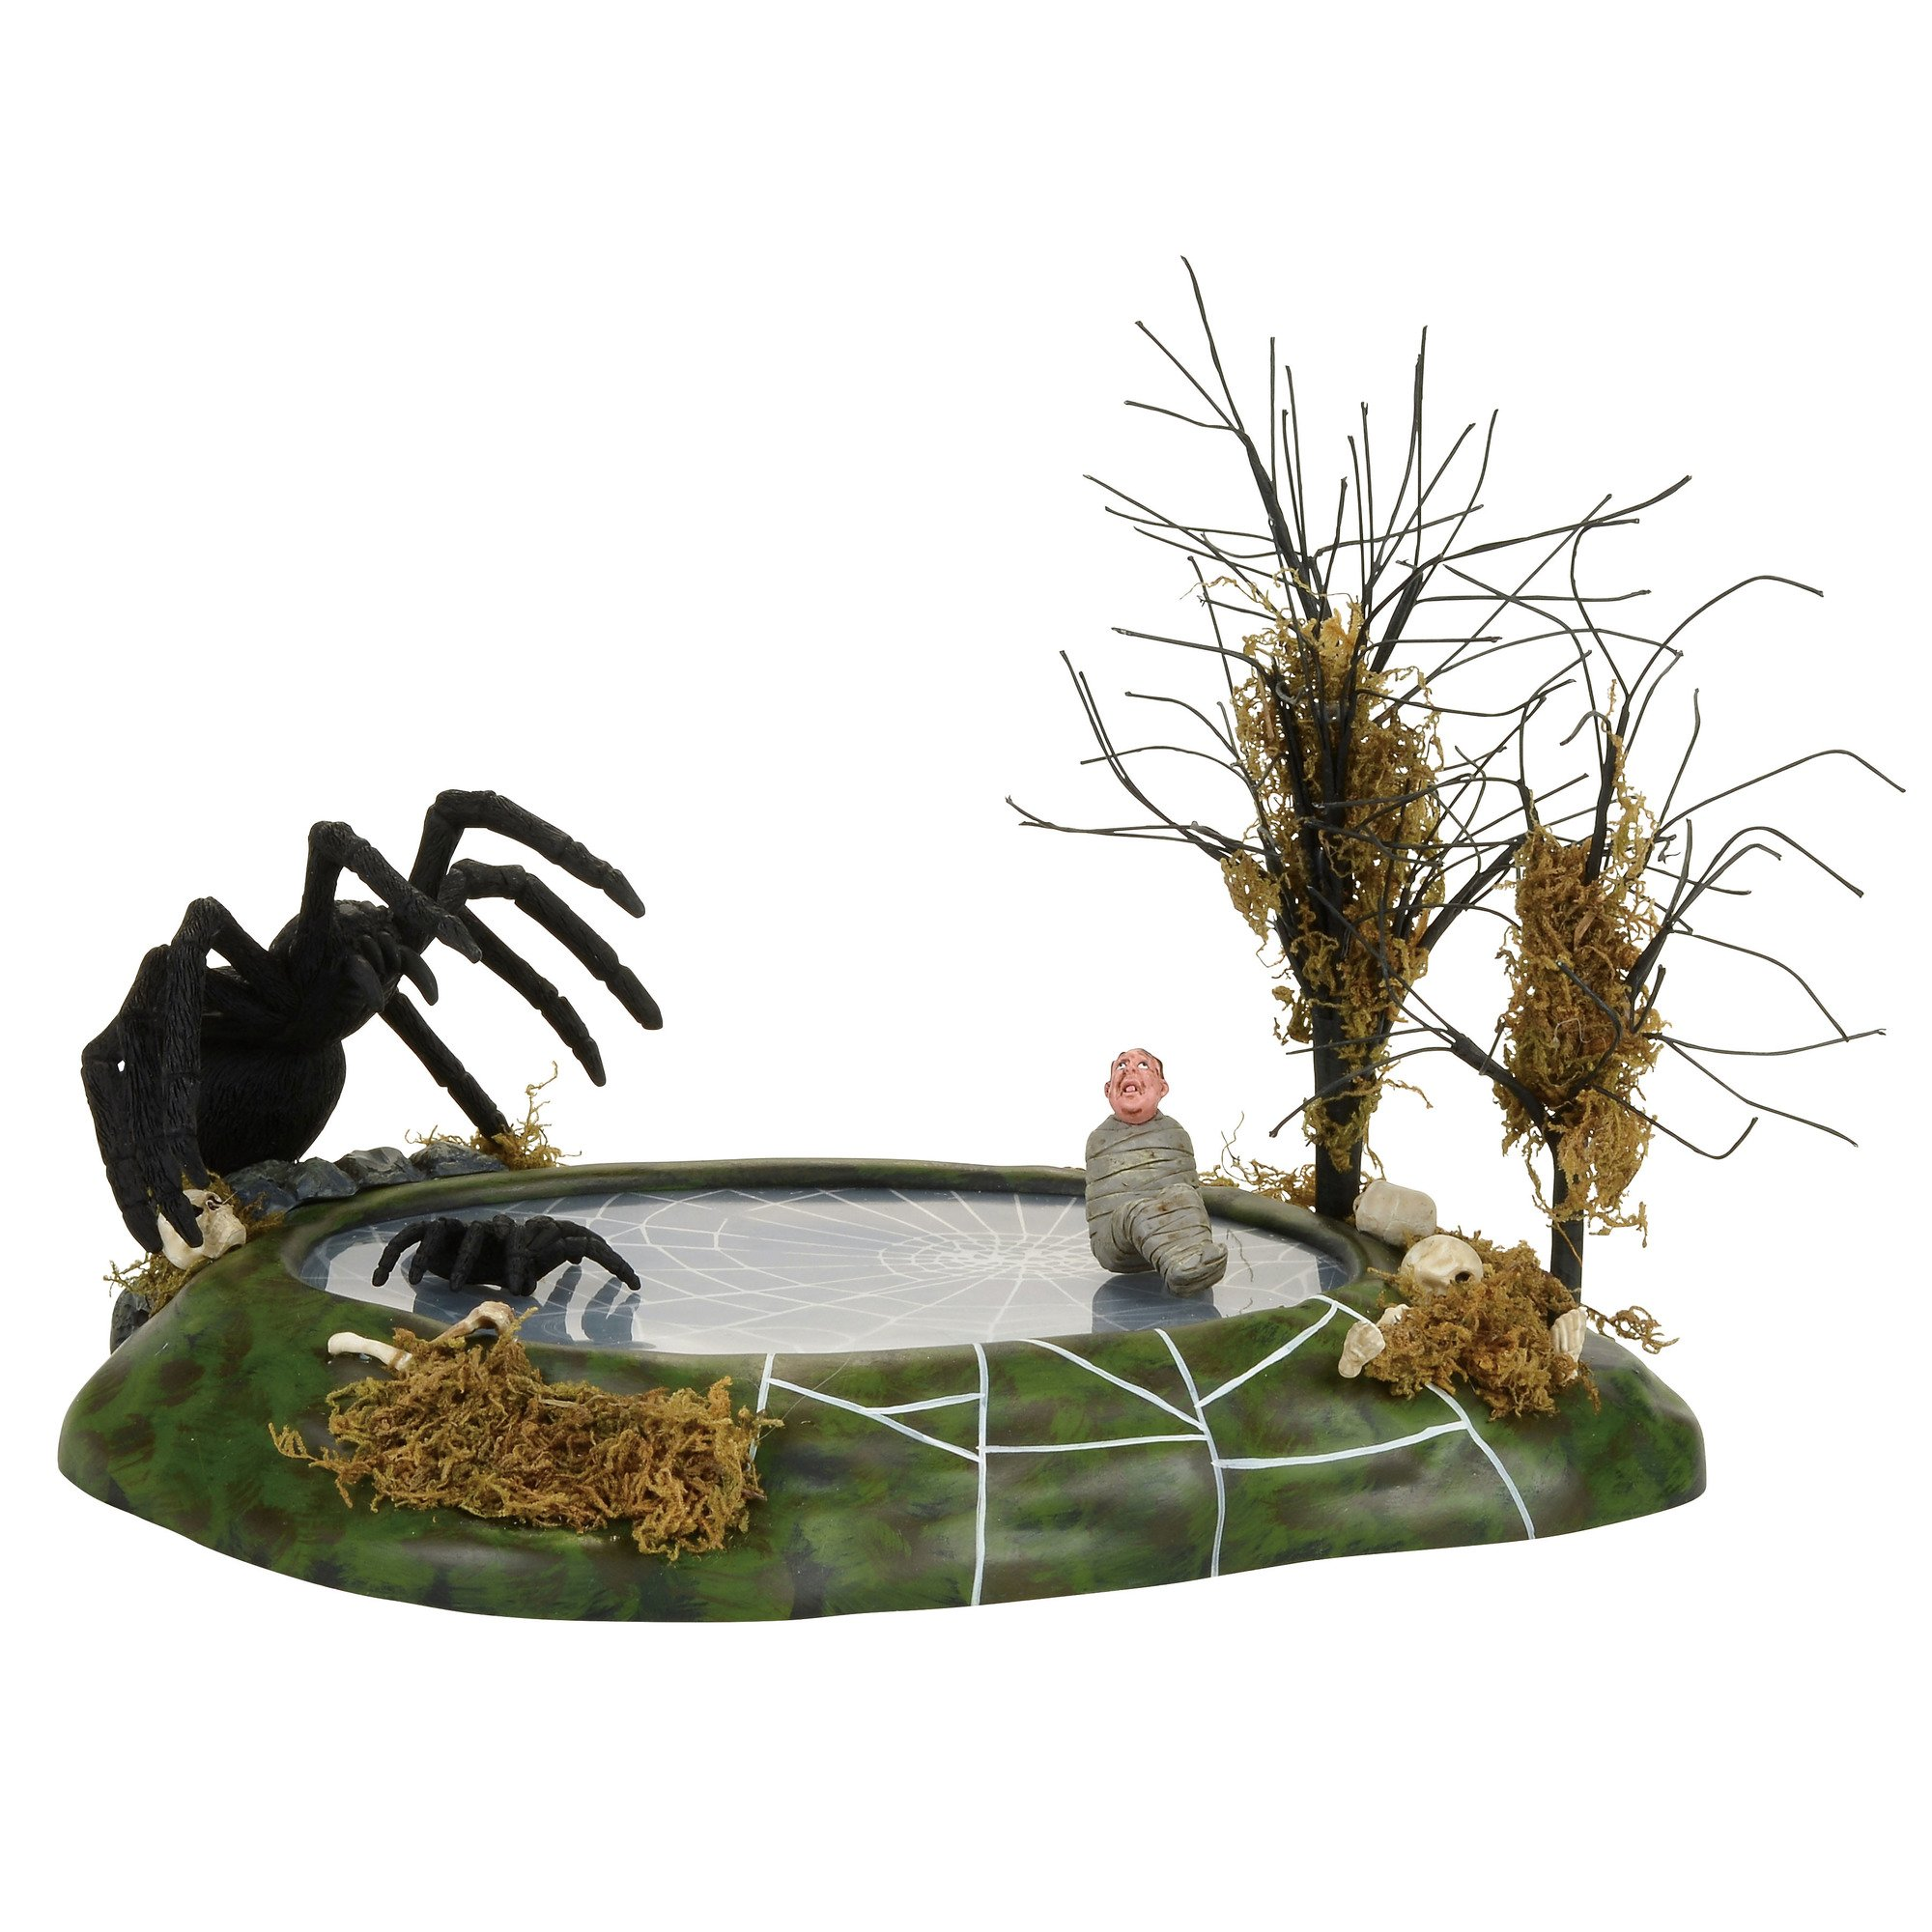 Department 56 Halloween Village Animated Nightmare